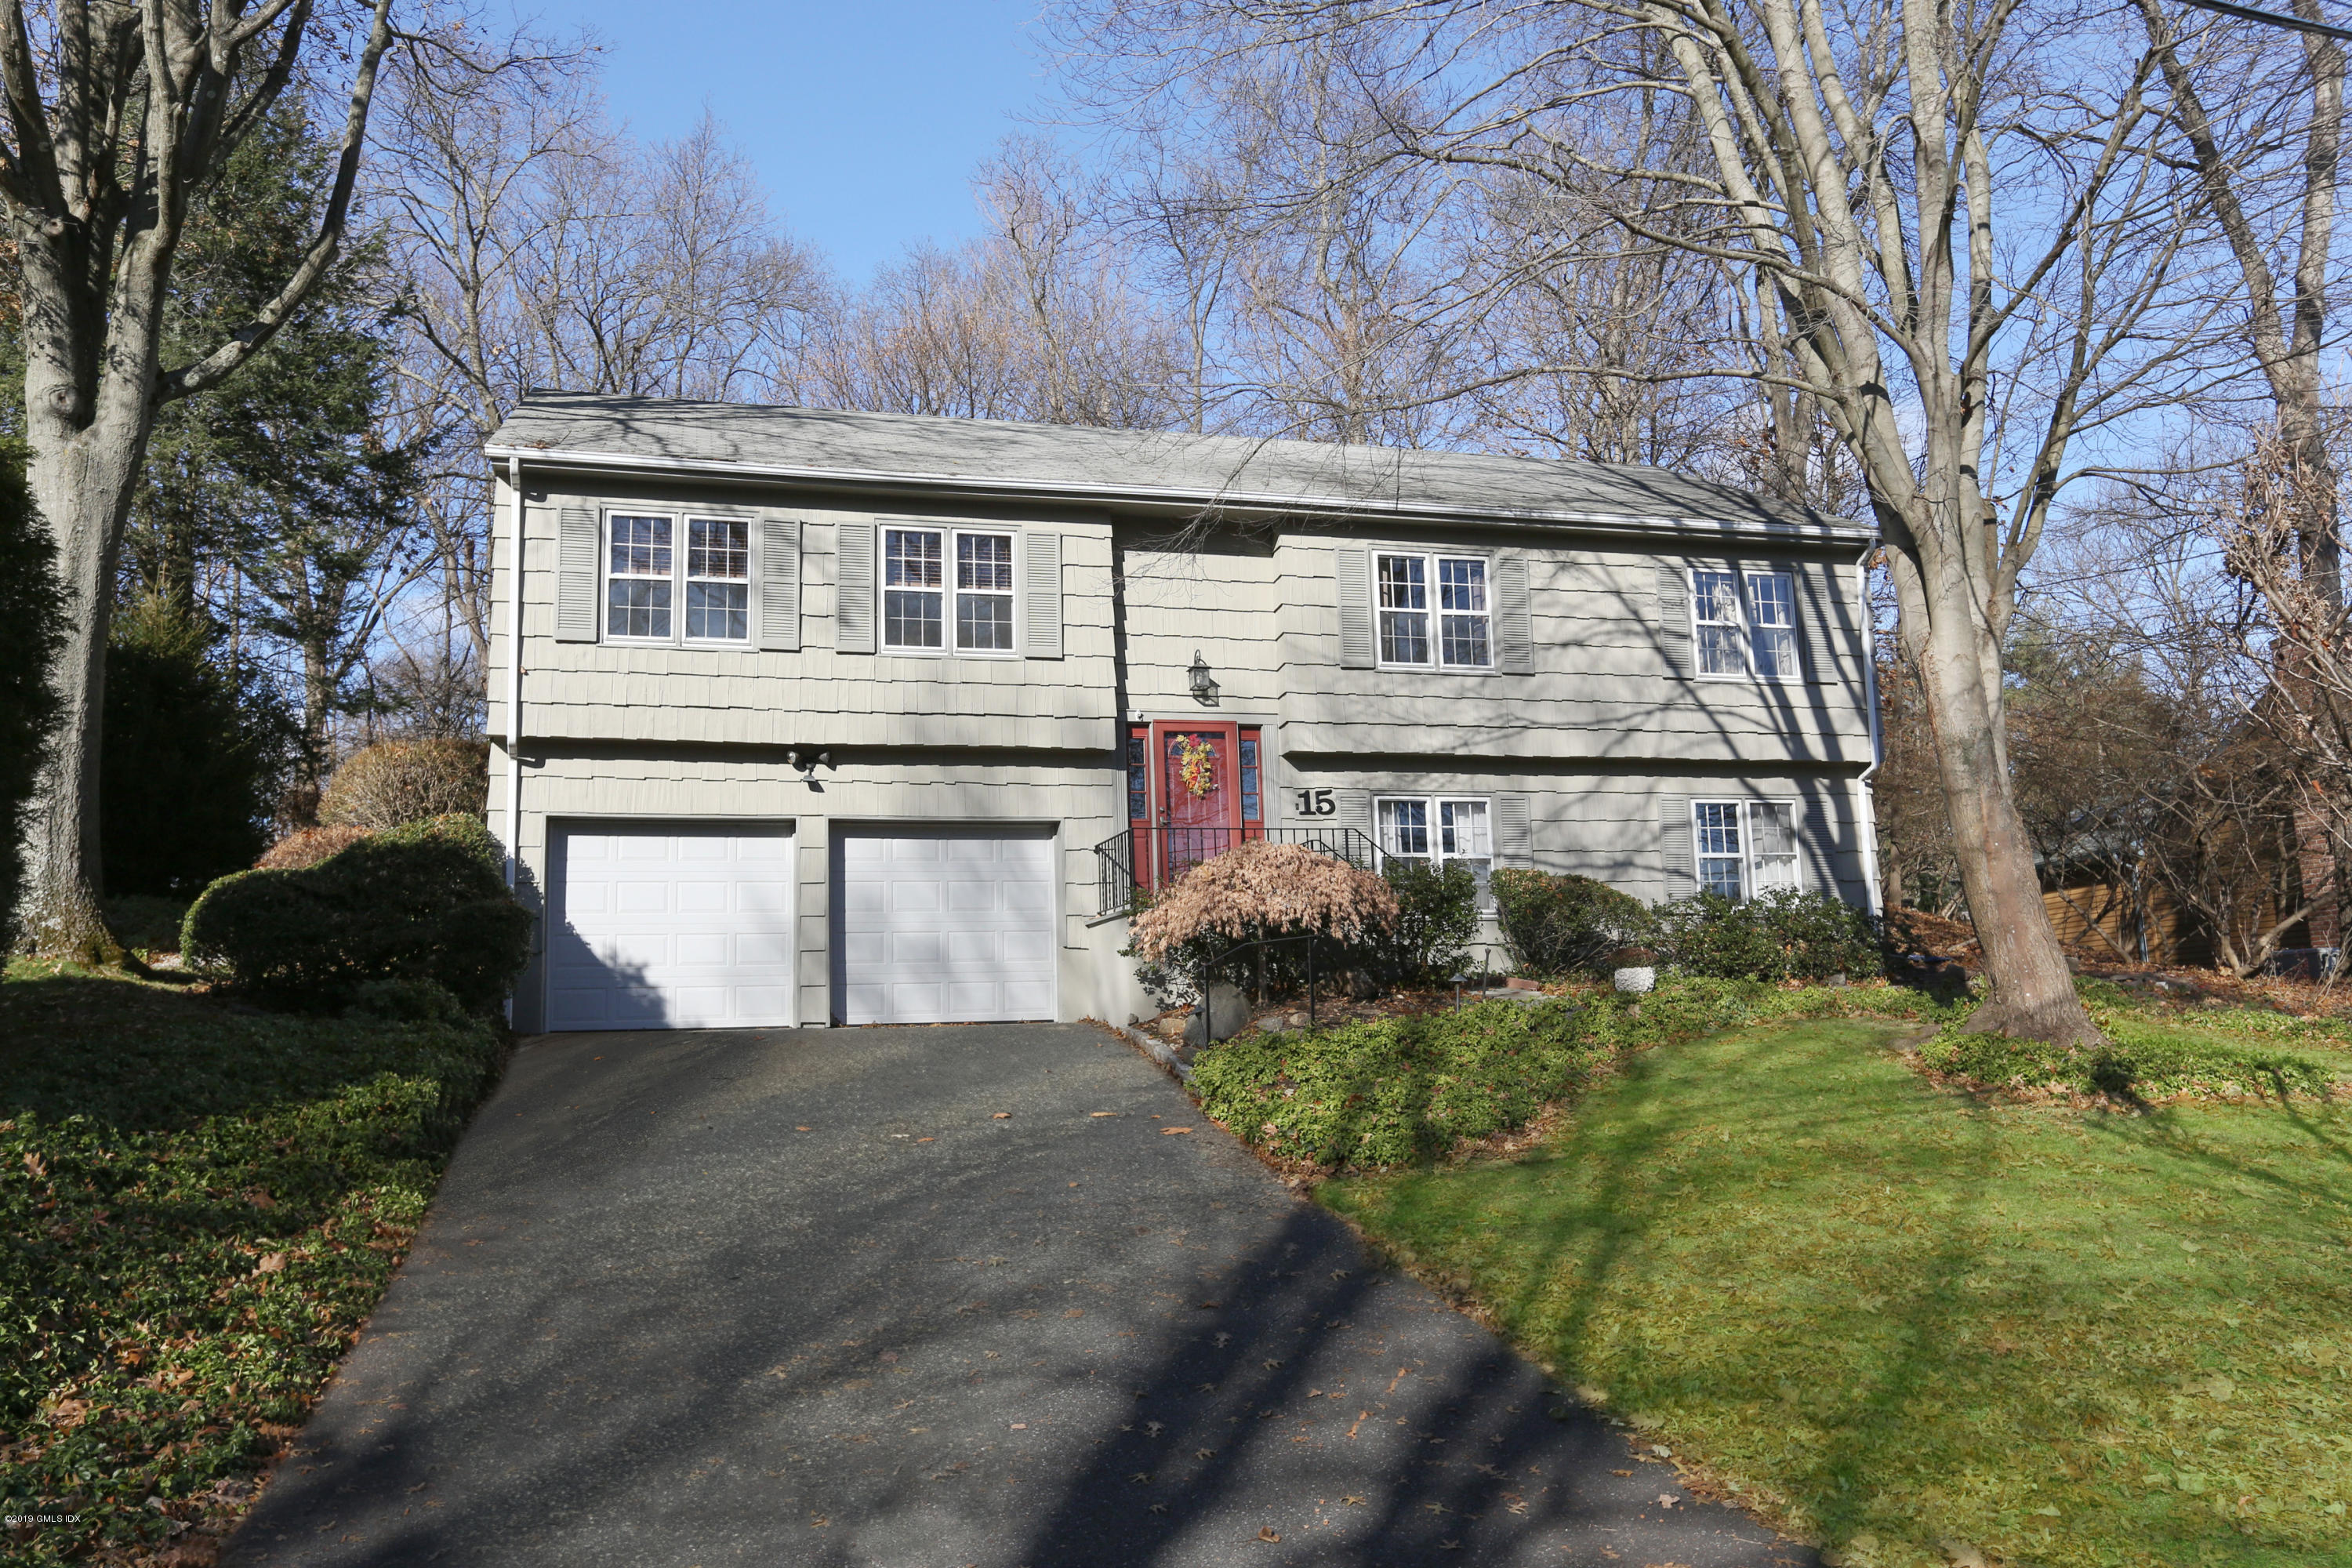 15 Lancer Road,Riverside,Connecticut 06878,4 Bedrooms Bedrooms,2 BathroomsBathrooms,Single family,Lancer,108633